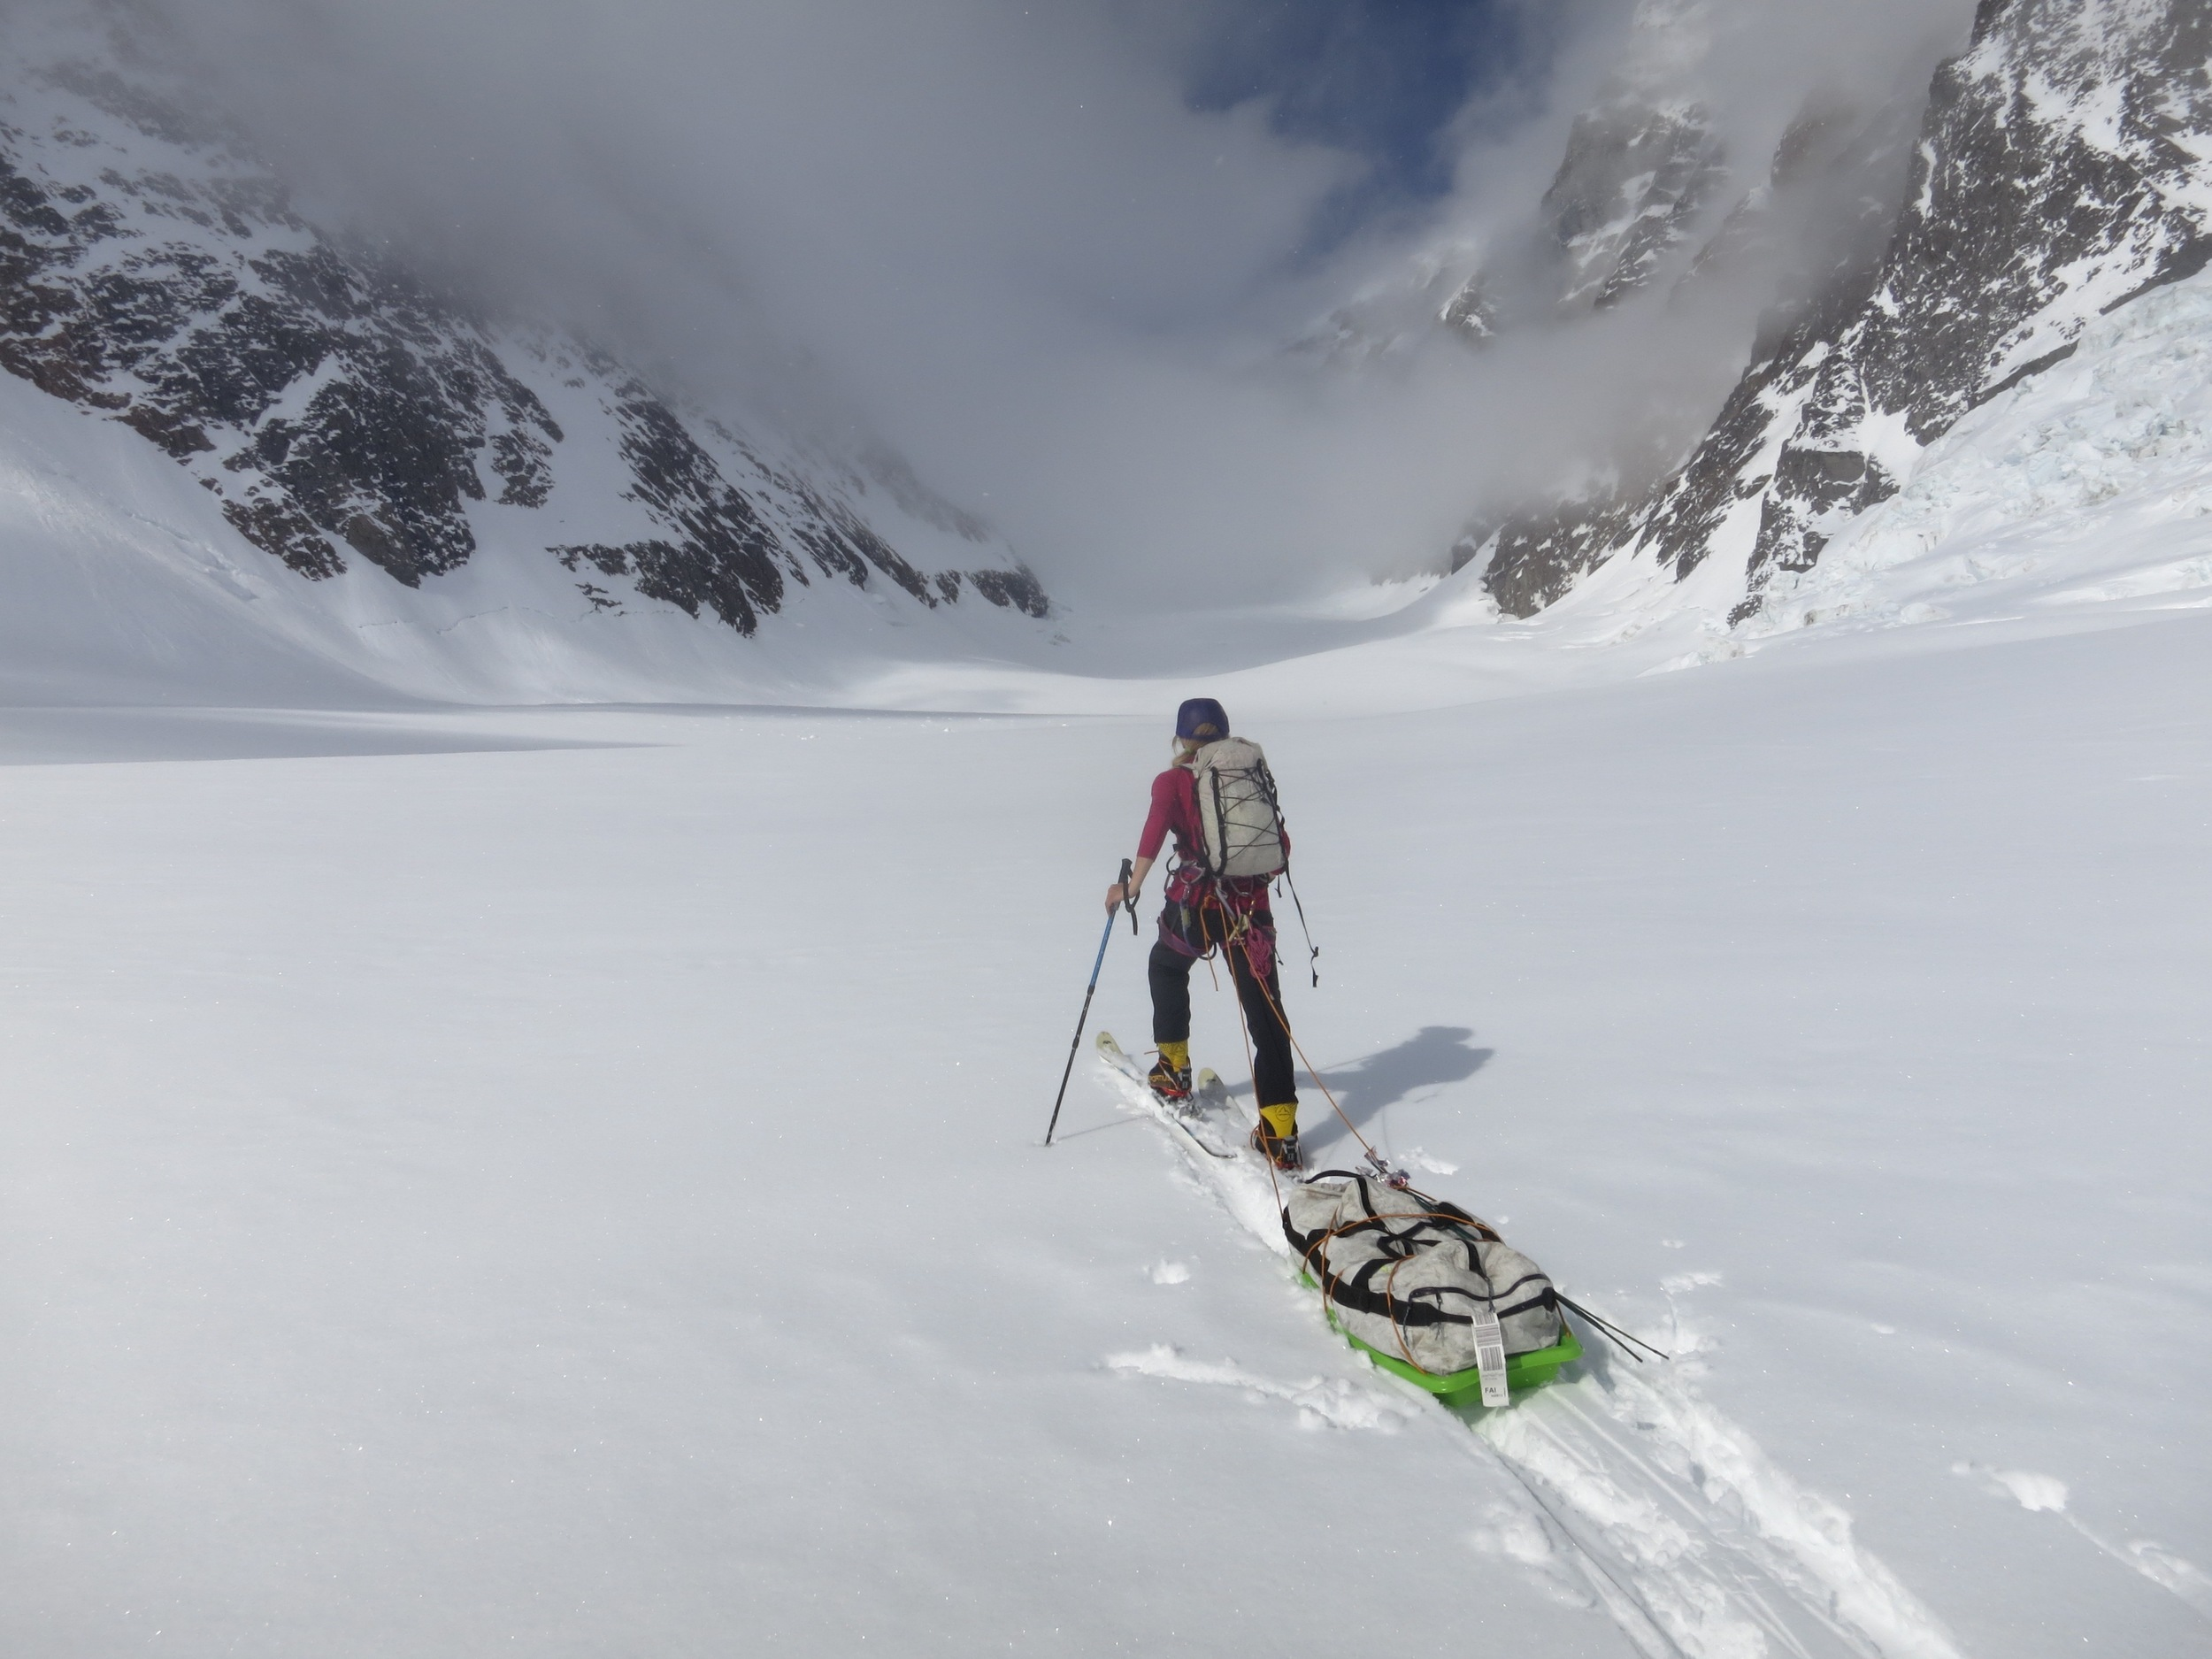 skiing up towards our soon to be ABC (Advanced base camp)